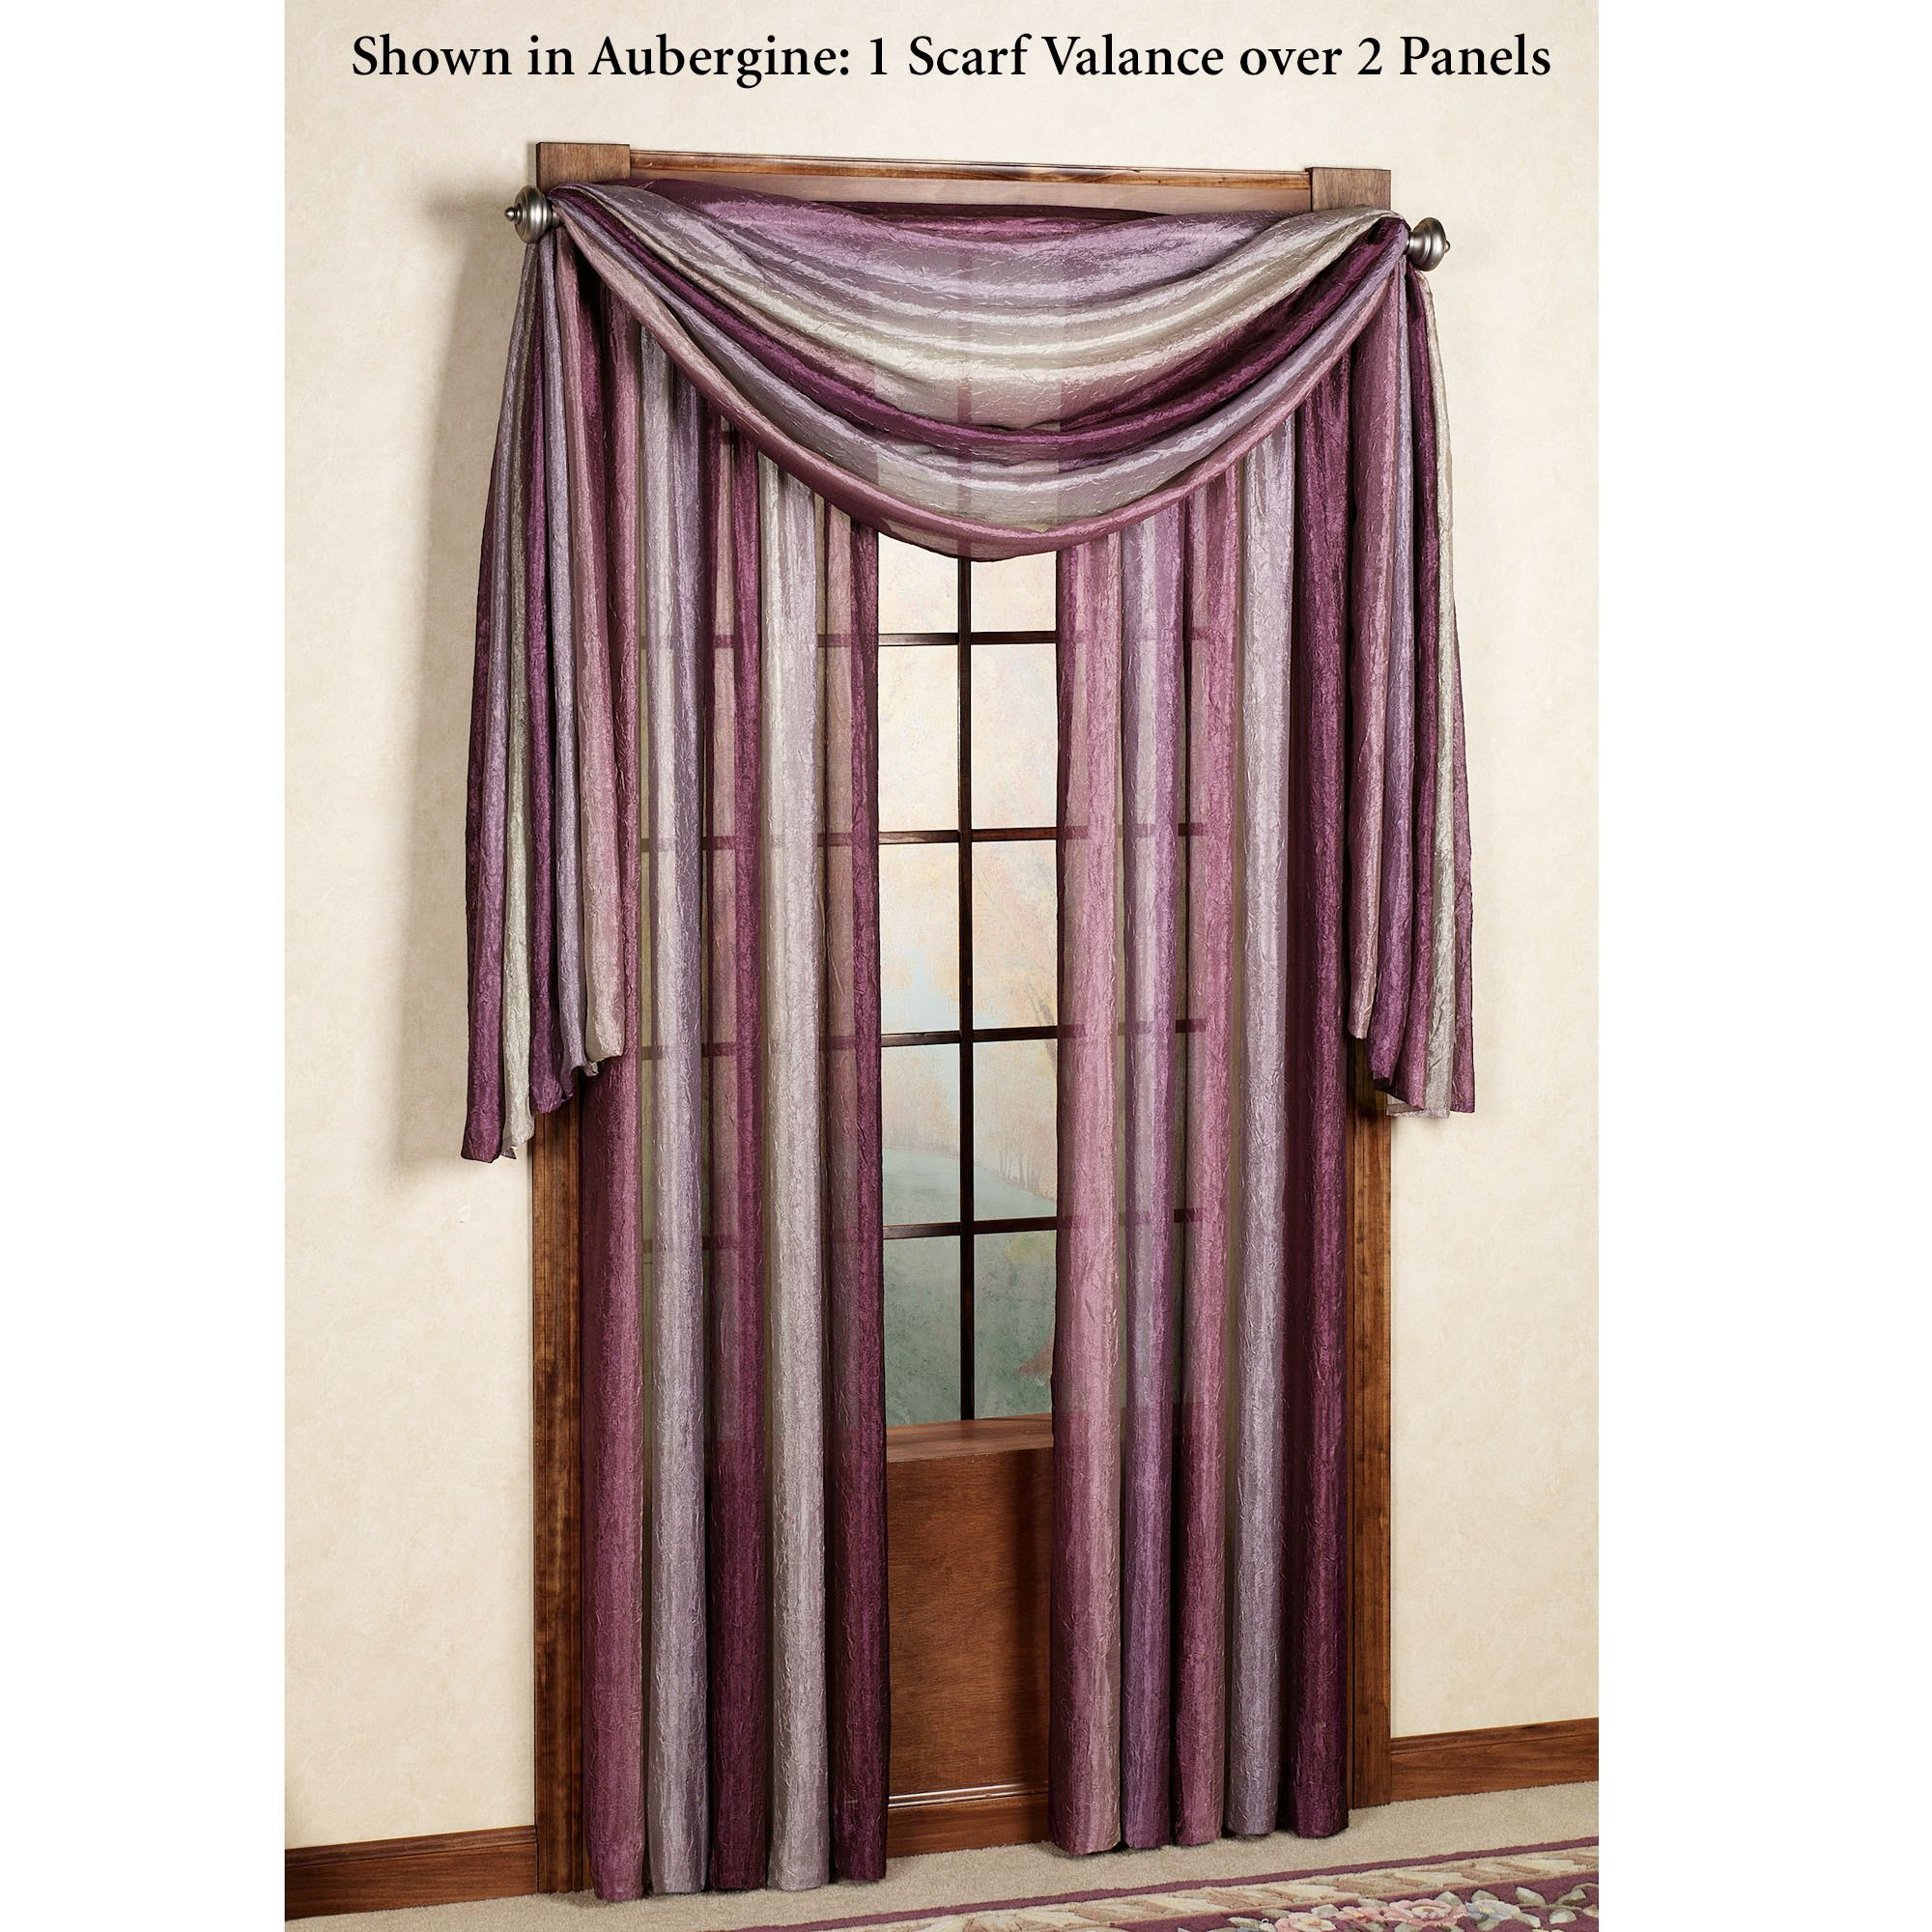 Using A Window Scarf Home Ombre Semi Sheer Valance And Treatments